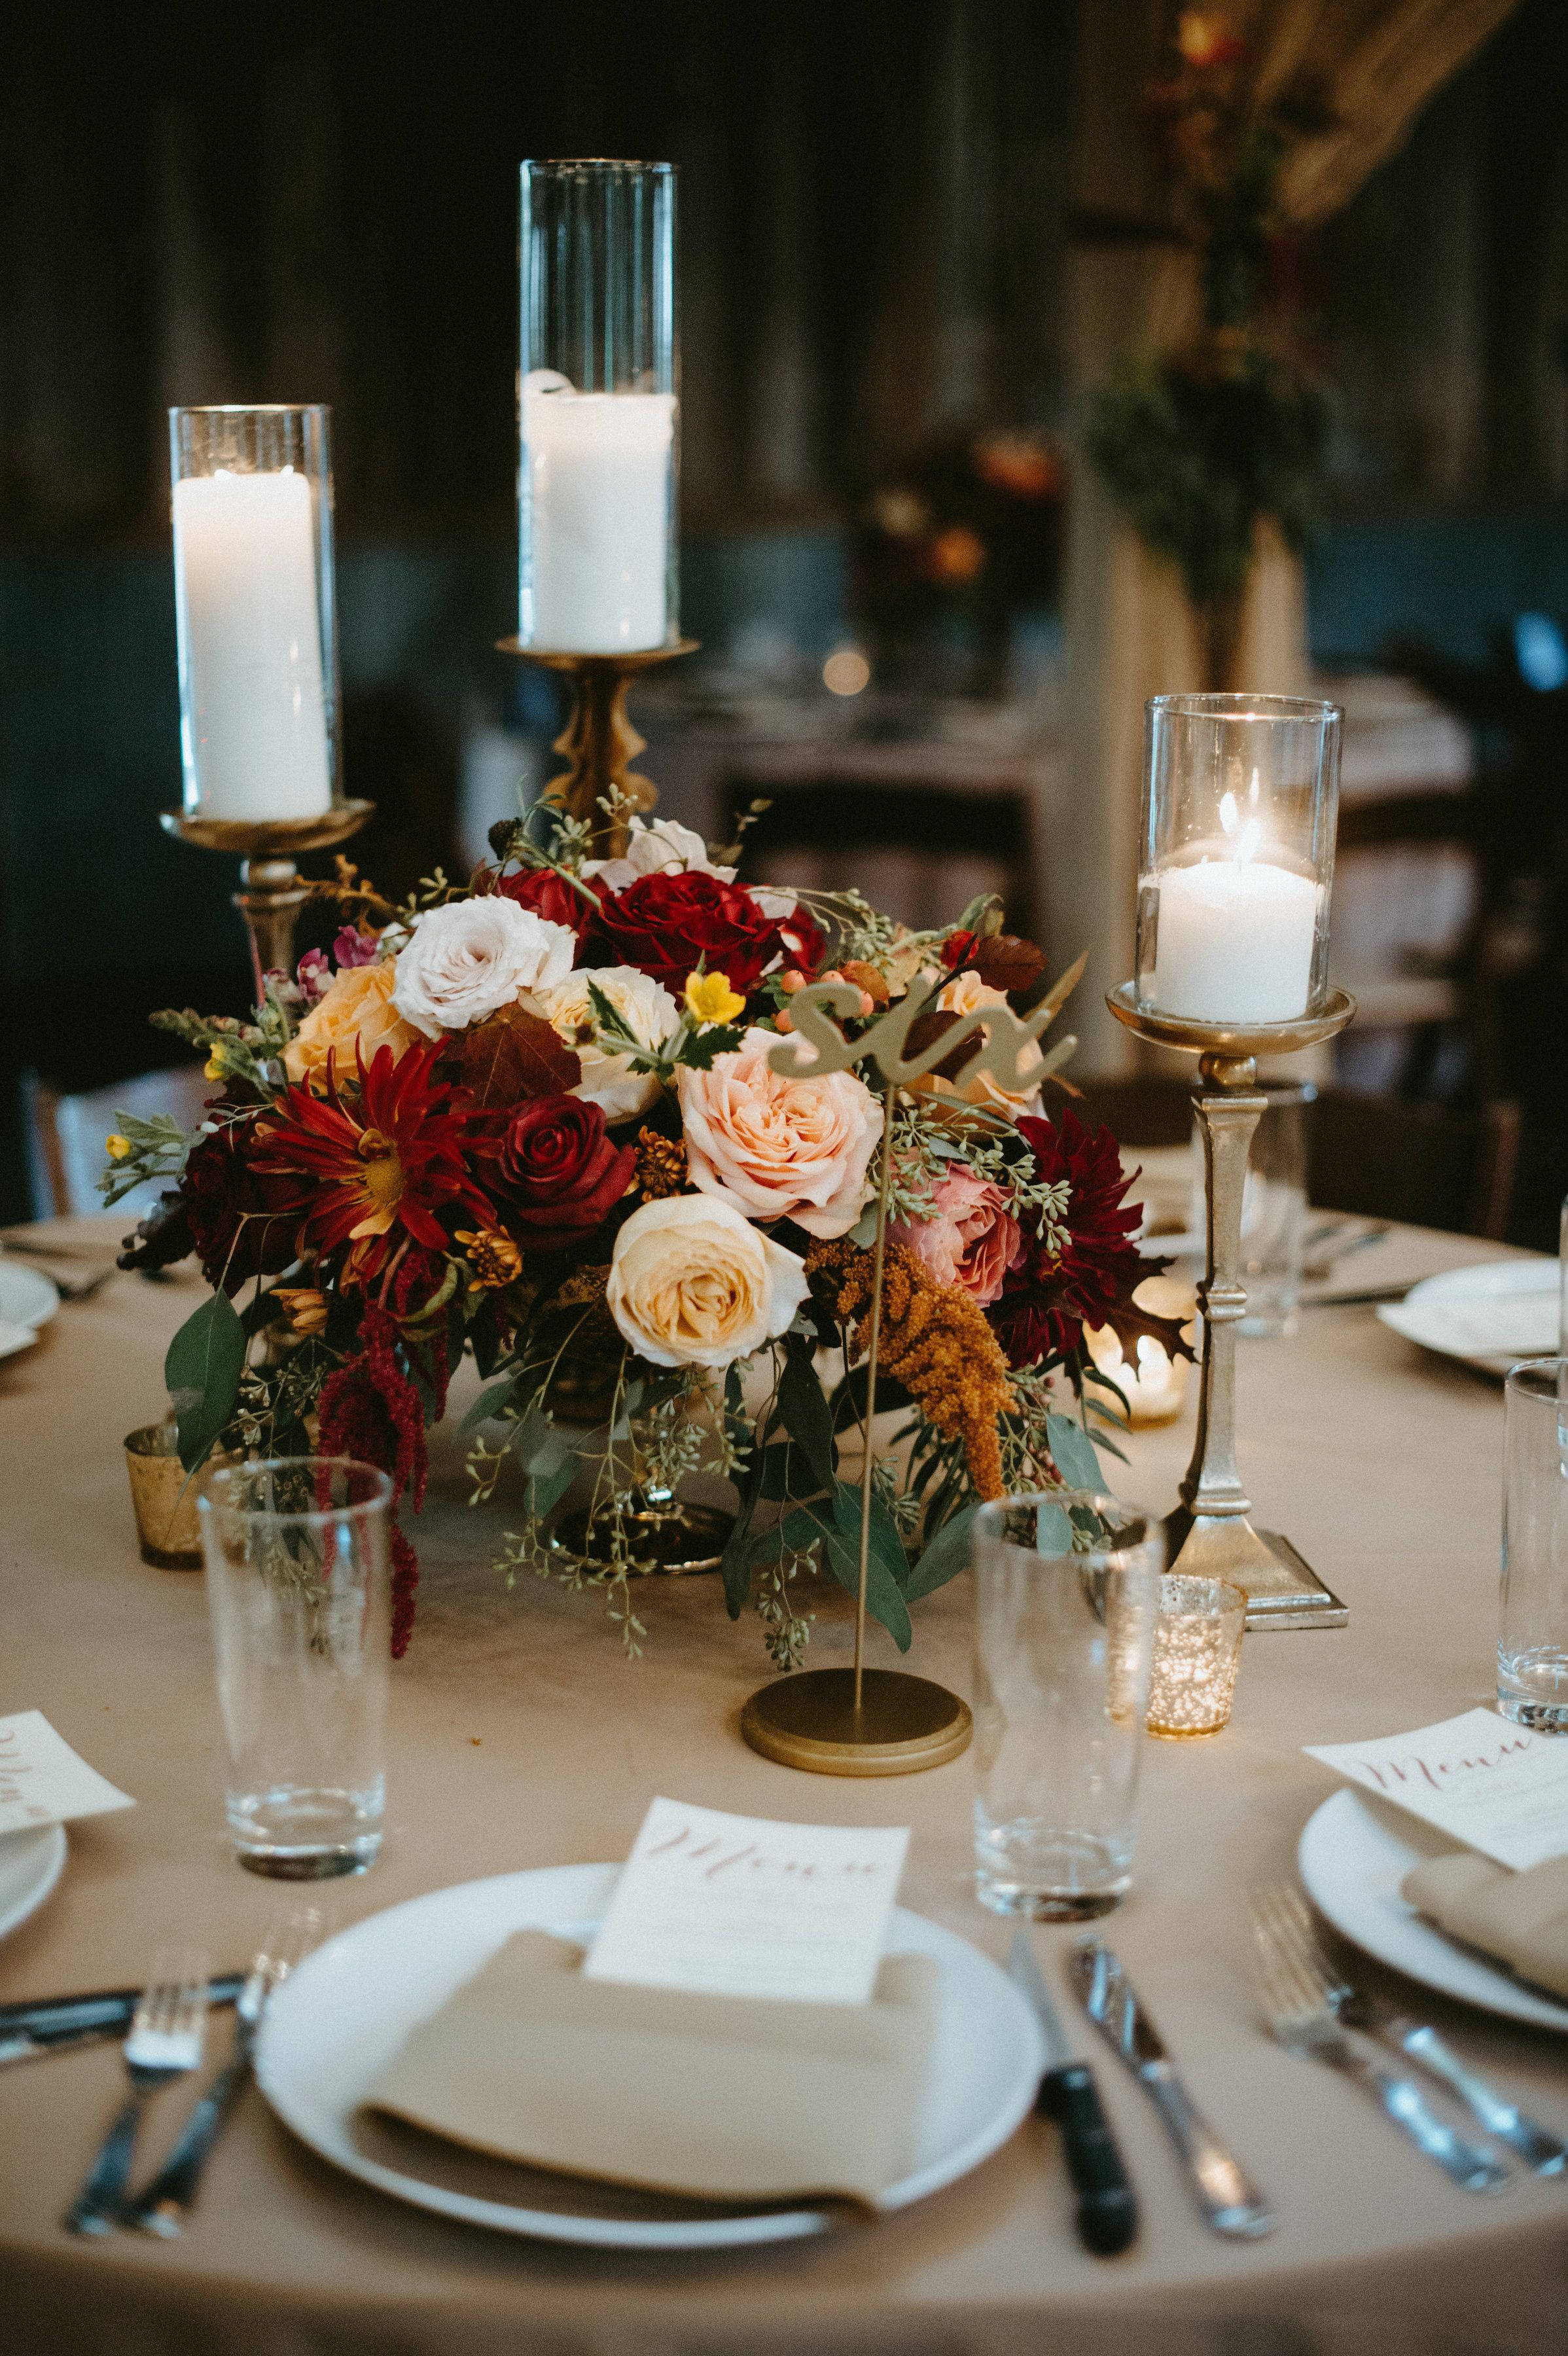 Fall Florals Set The Mood For This Rustic Romance Wedding Rustic